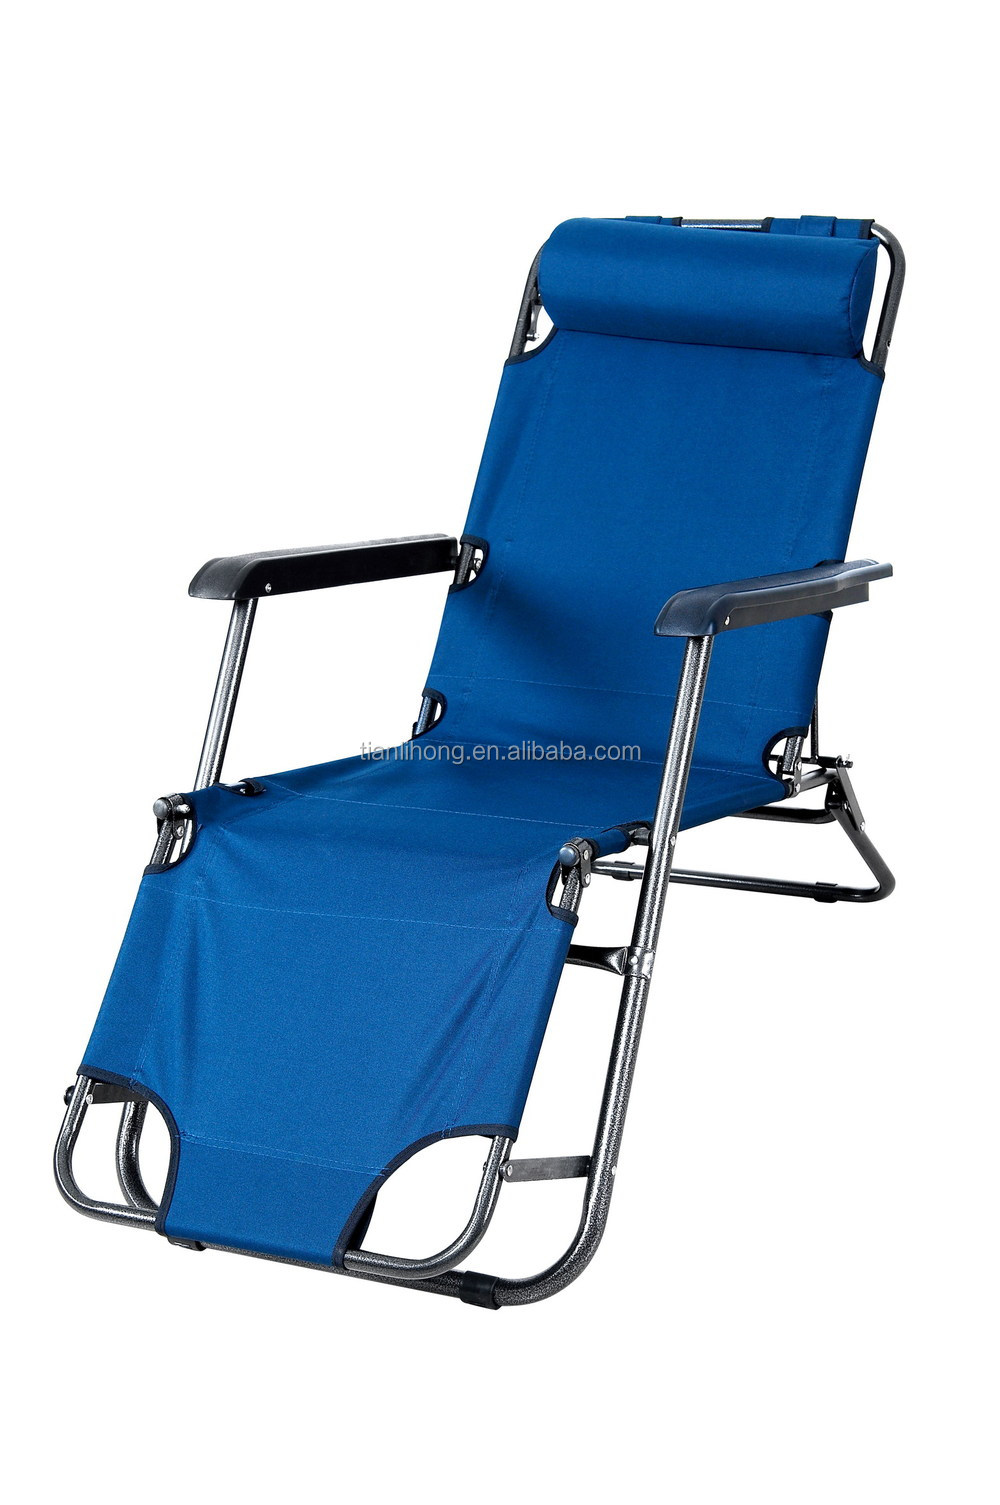 Cheap Lounge Chair Portable Sleeping Chair Folding Beach Chair Buy Folding